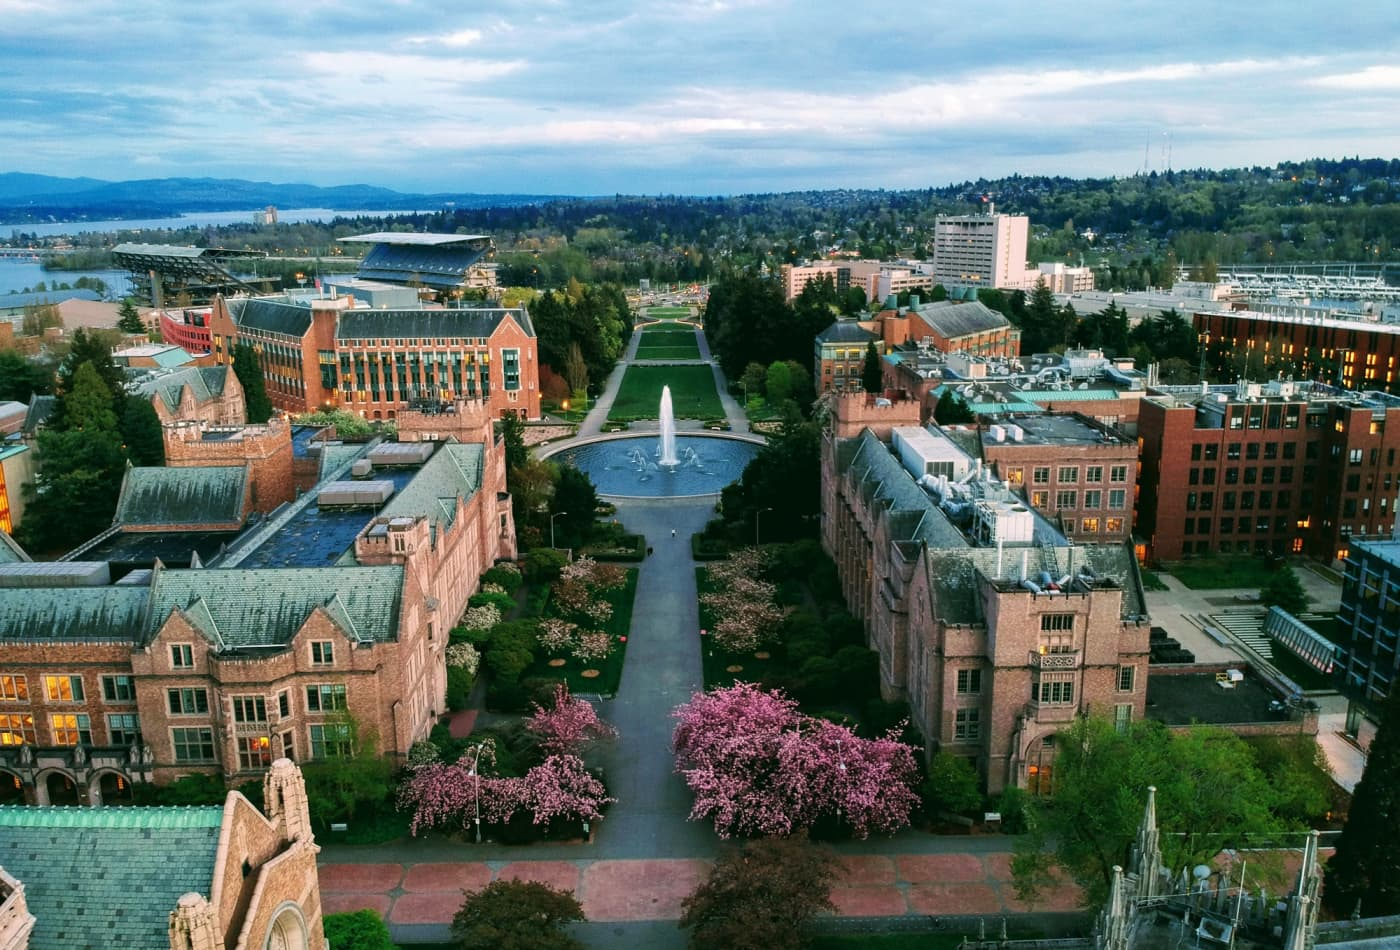 U S  News: These are the 10 best universities in the world